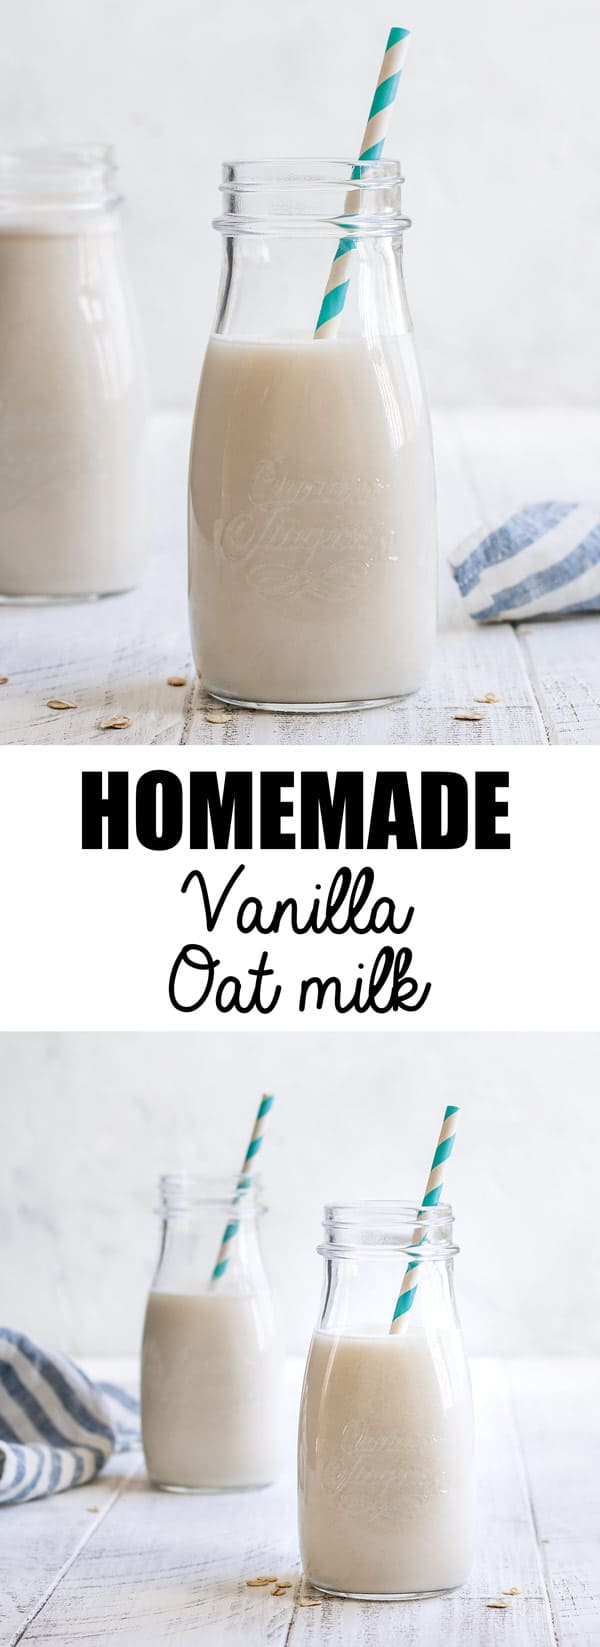 Looking for an alternative to almond milk? Try this homemade vanilla oat milk! Learn how to make oat milk the easy way with this simple recipe. #oatmilk #plantbasedmilk #nondairymilk